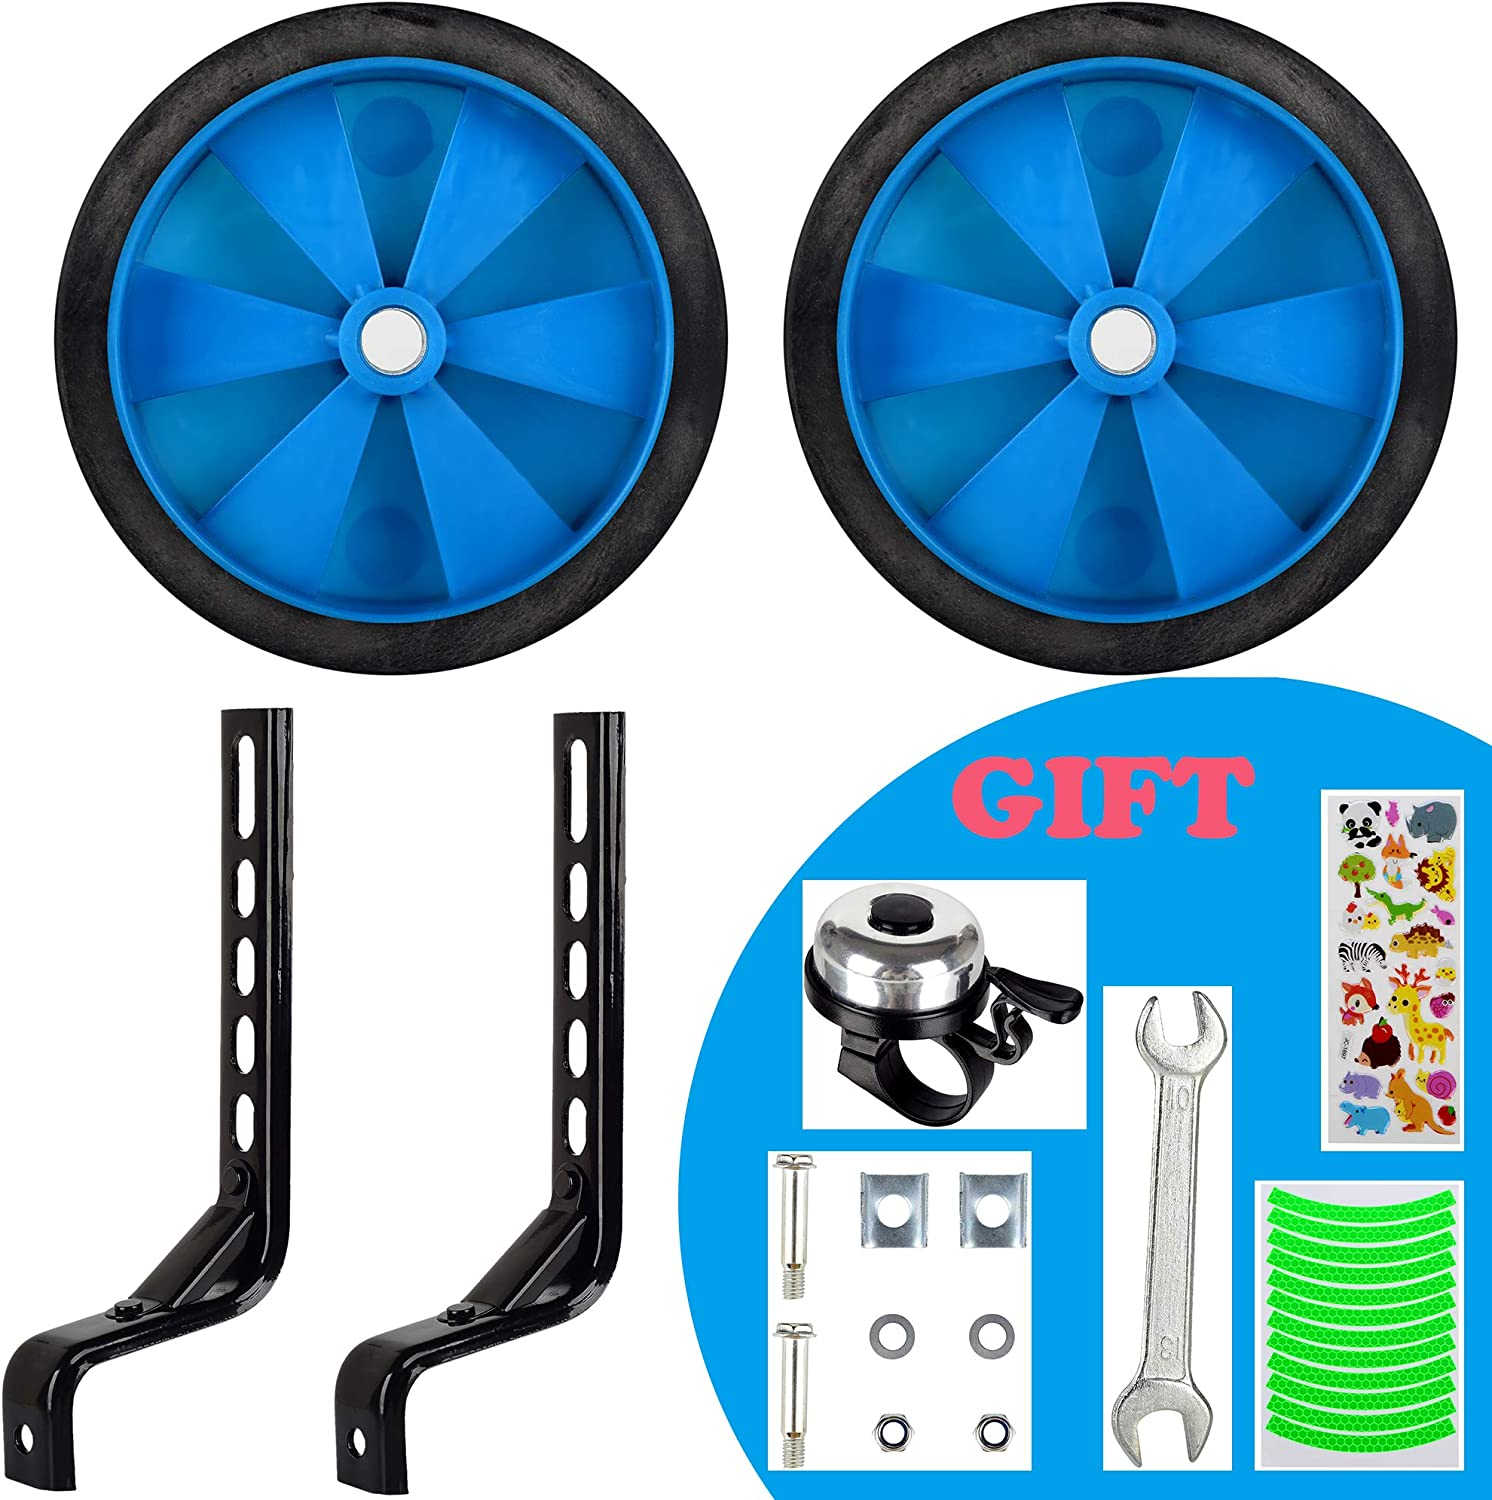 Bicycle Training Super beauty product restock quality top Wheels for Kids Hea Great interest Stronger Boys Girls Version